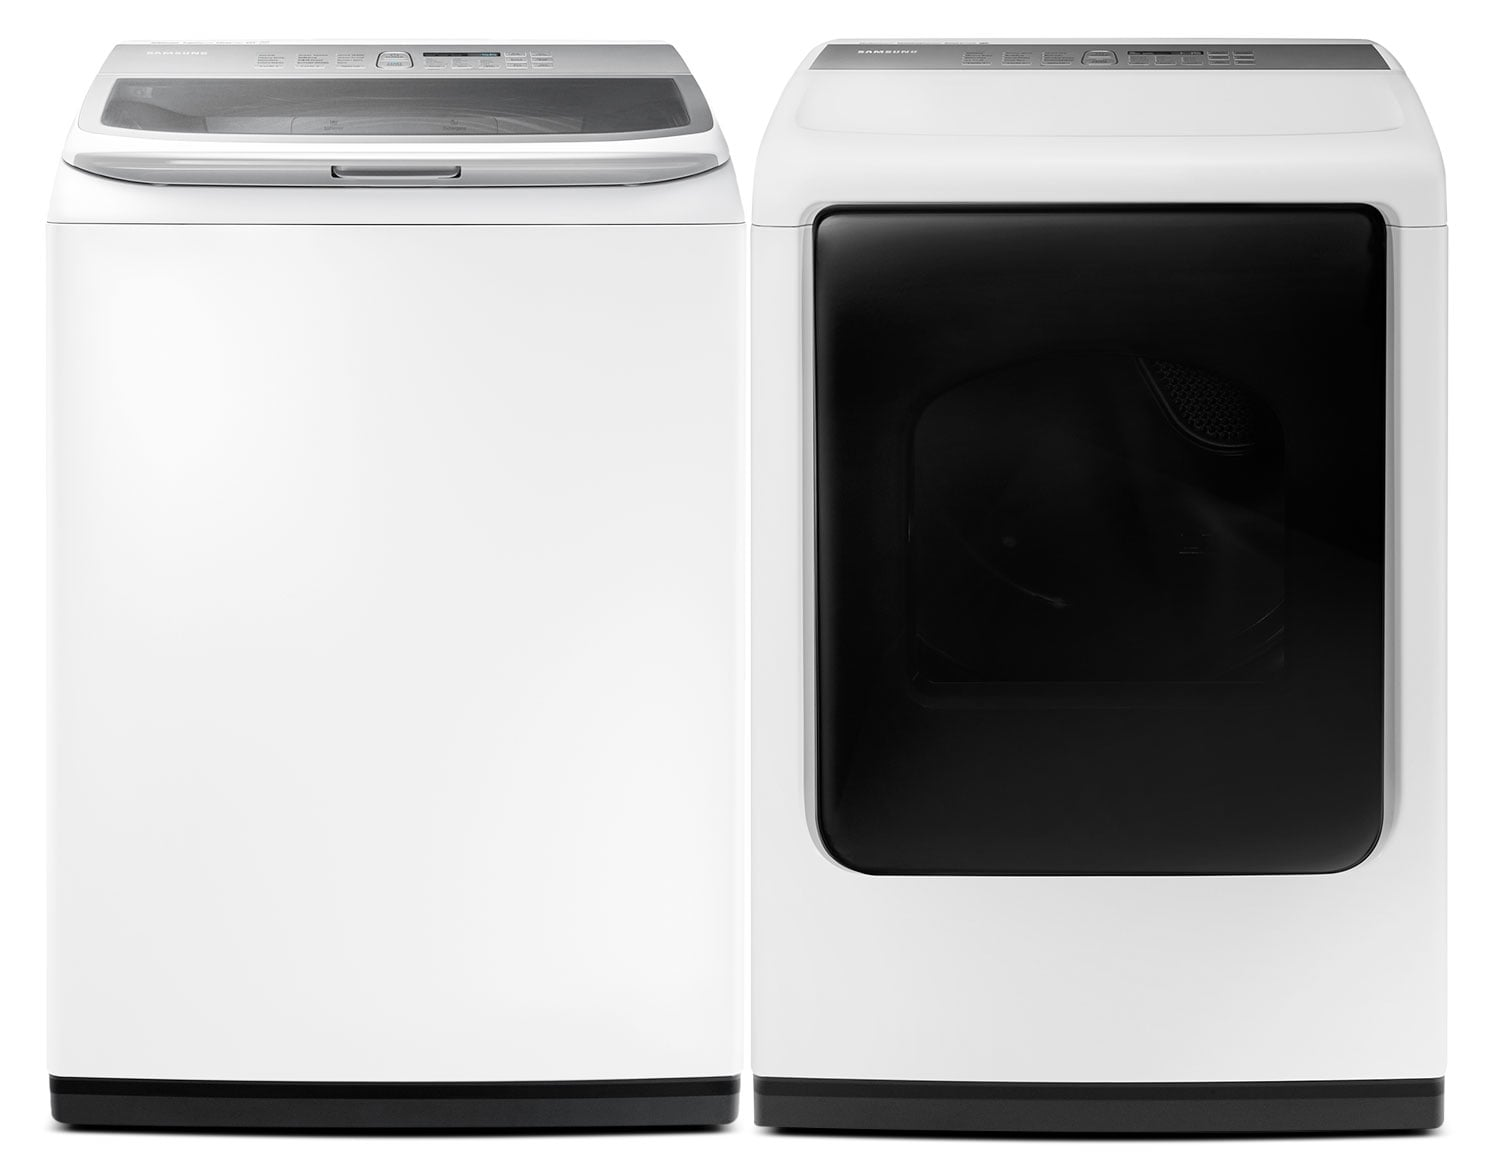 Washers and Dryers - Samsung 5.2 Cu. Ft. Top-Load Washer and 7.5 Cu. Ft. Electric Dryer – White